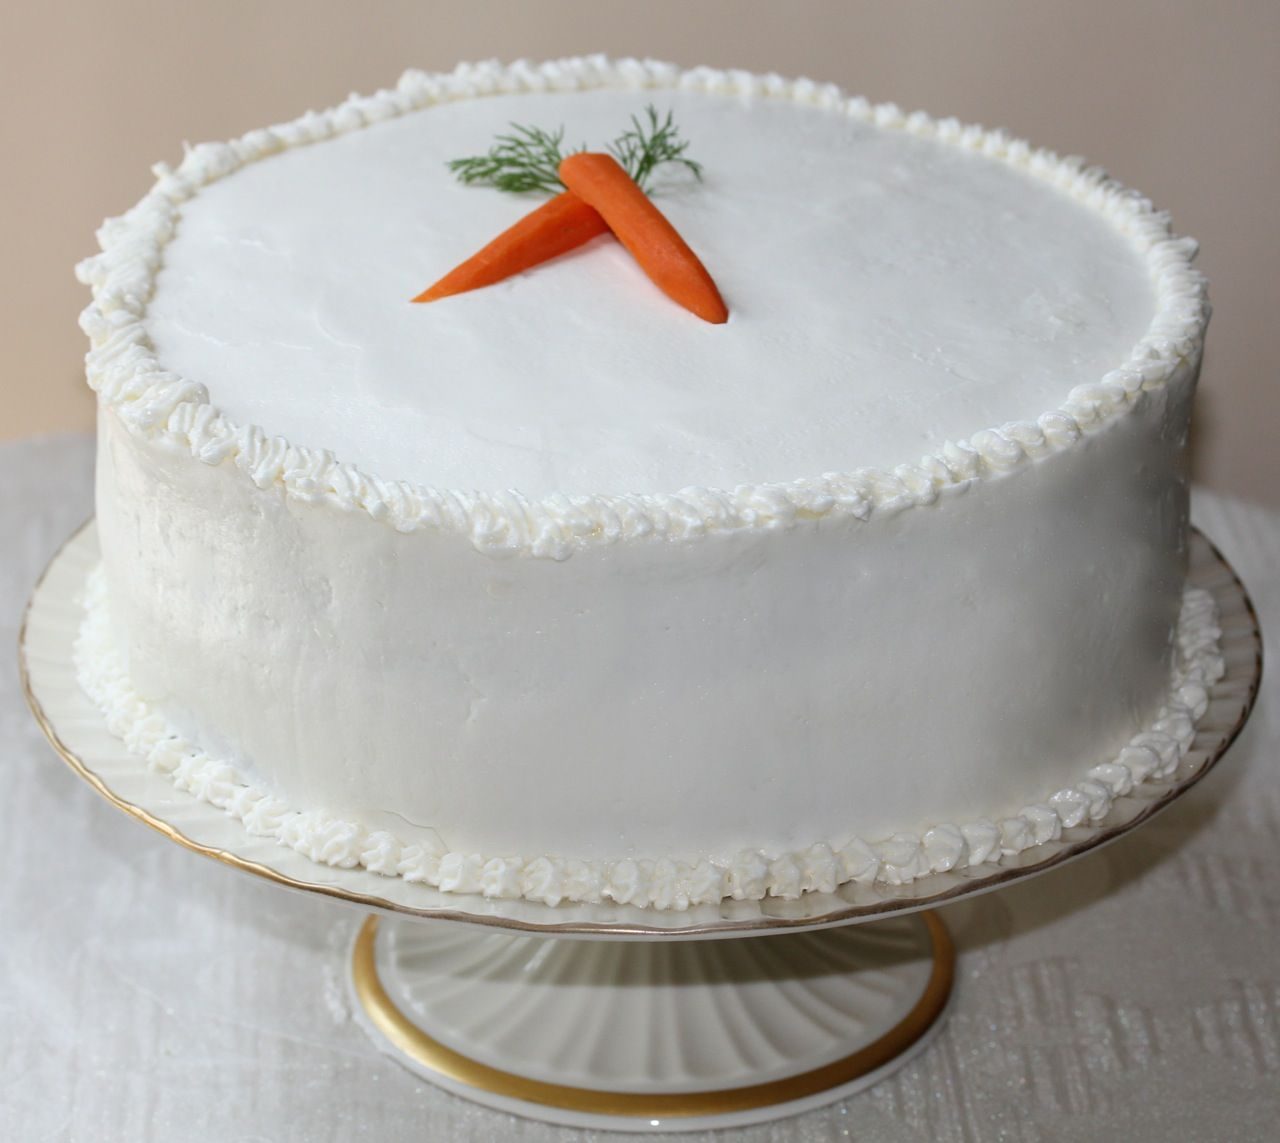 Carrot Cake Recipe | Pastry chef, Carrots and Cake